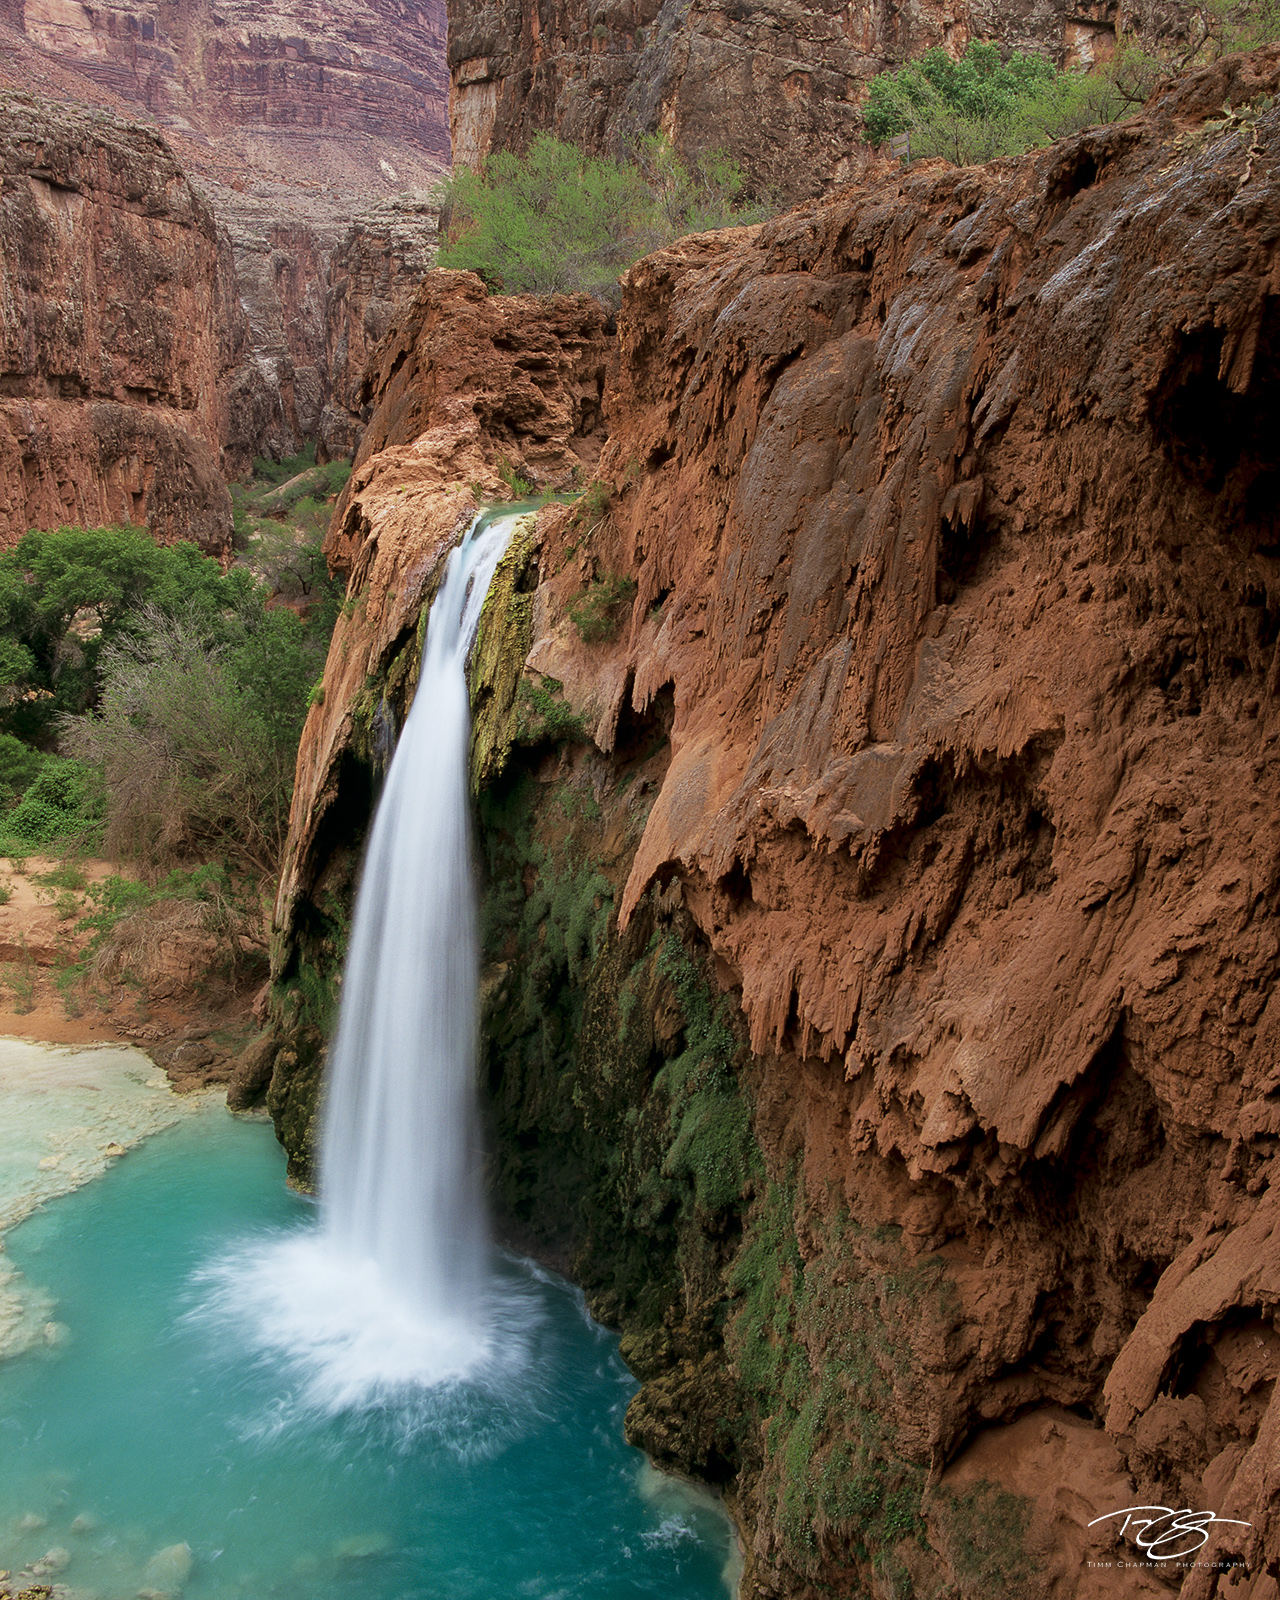 Arizona, Grand Canyon, Havasu Creek, Havasu Falls, canyon, northern arizona, waterfalls, havasupai, supai, people of the blue green water, canyon oasis, waterfall, hualapai hilltop, indian reservation, photo